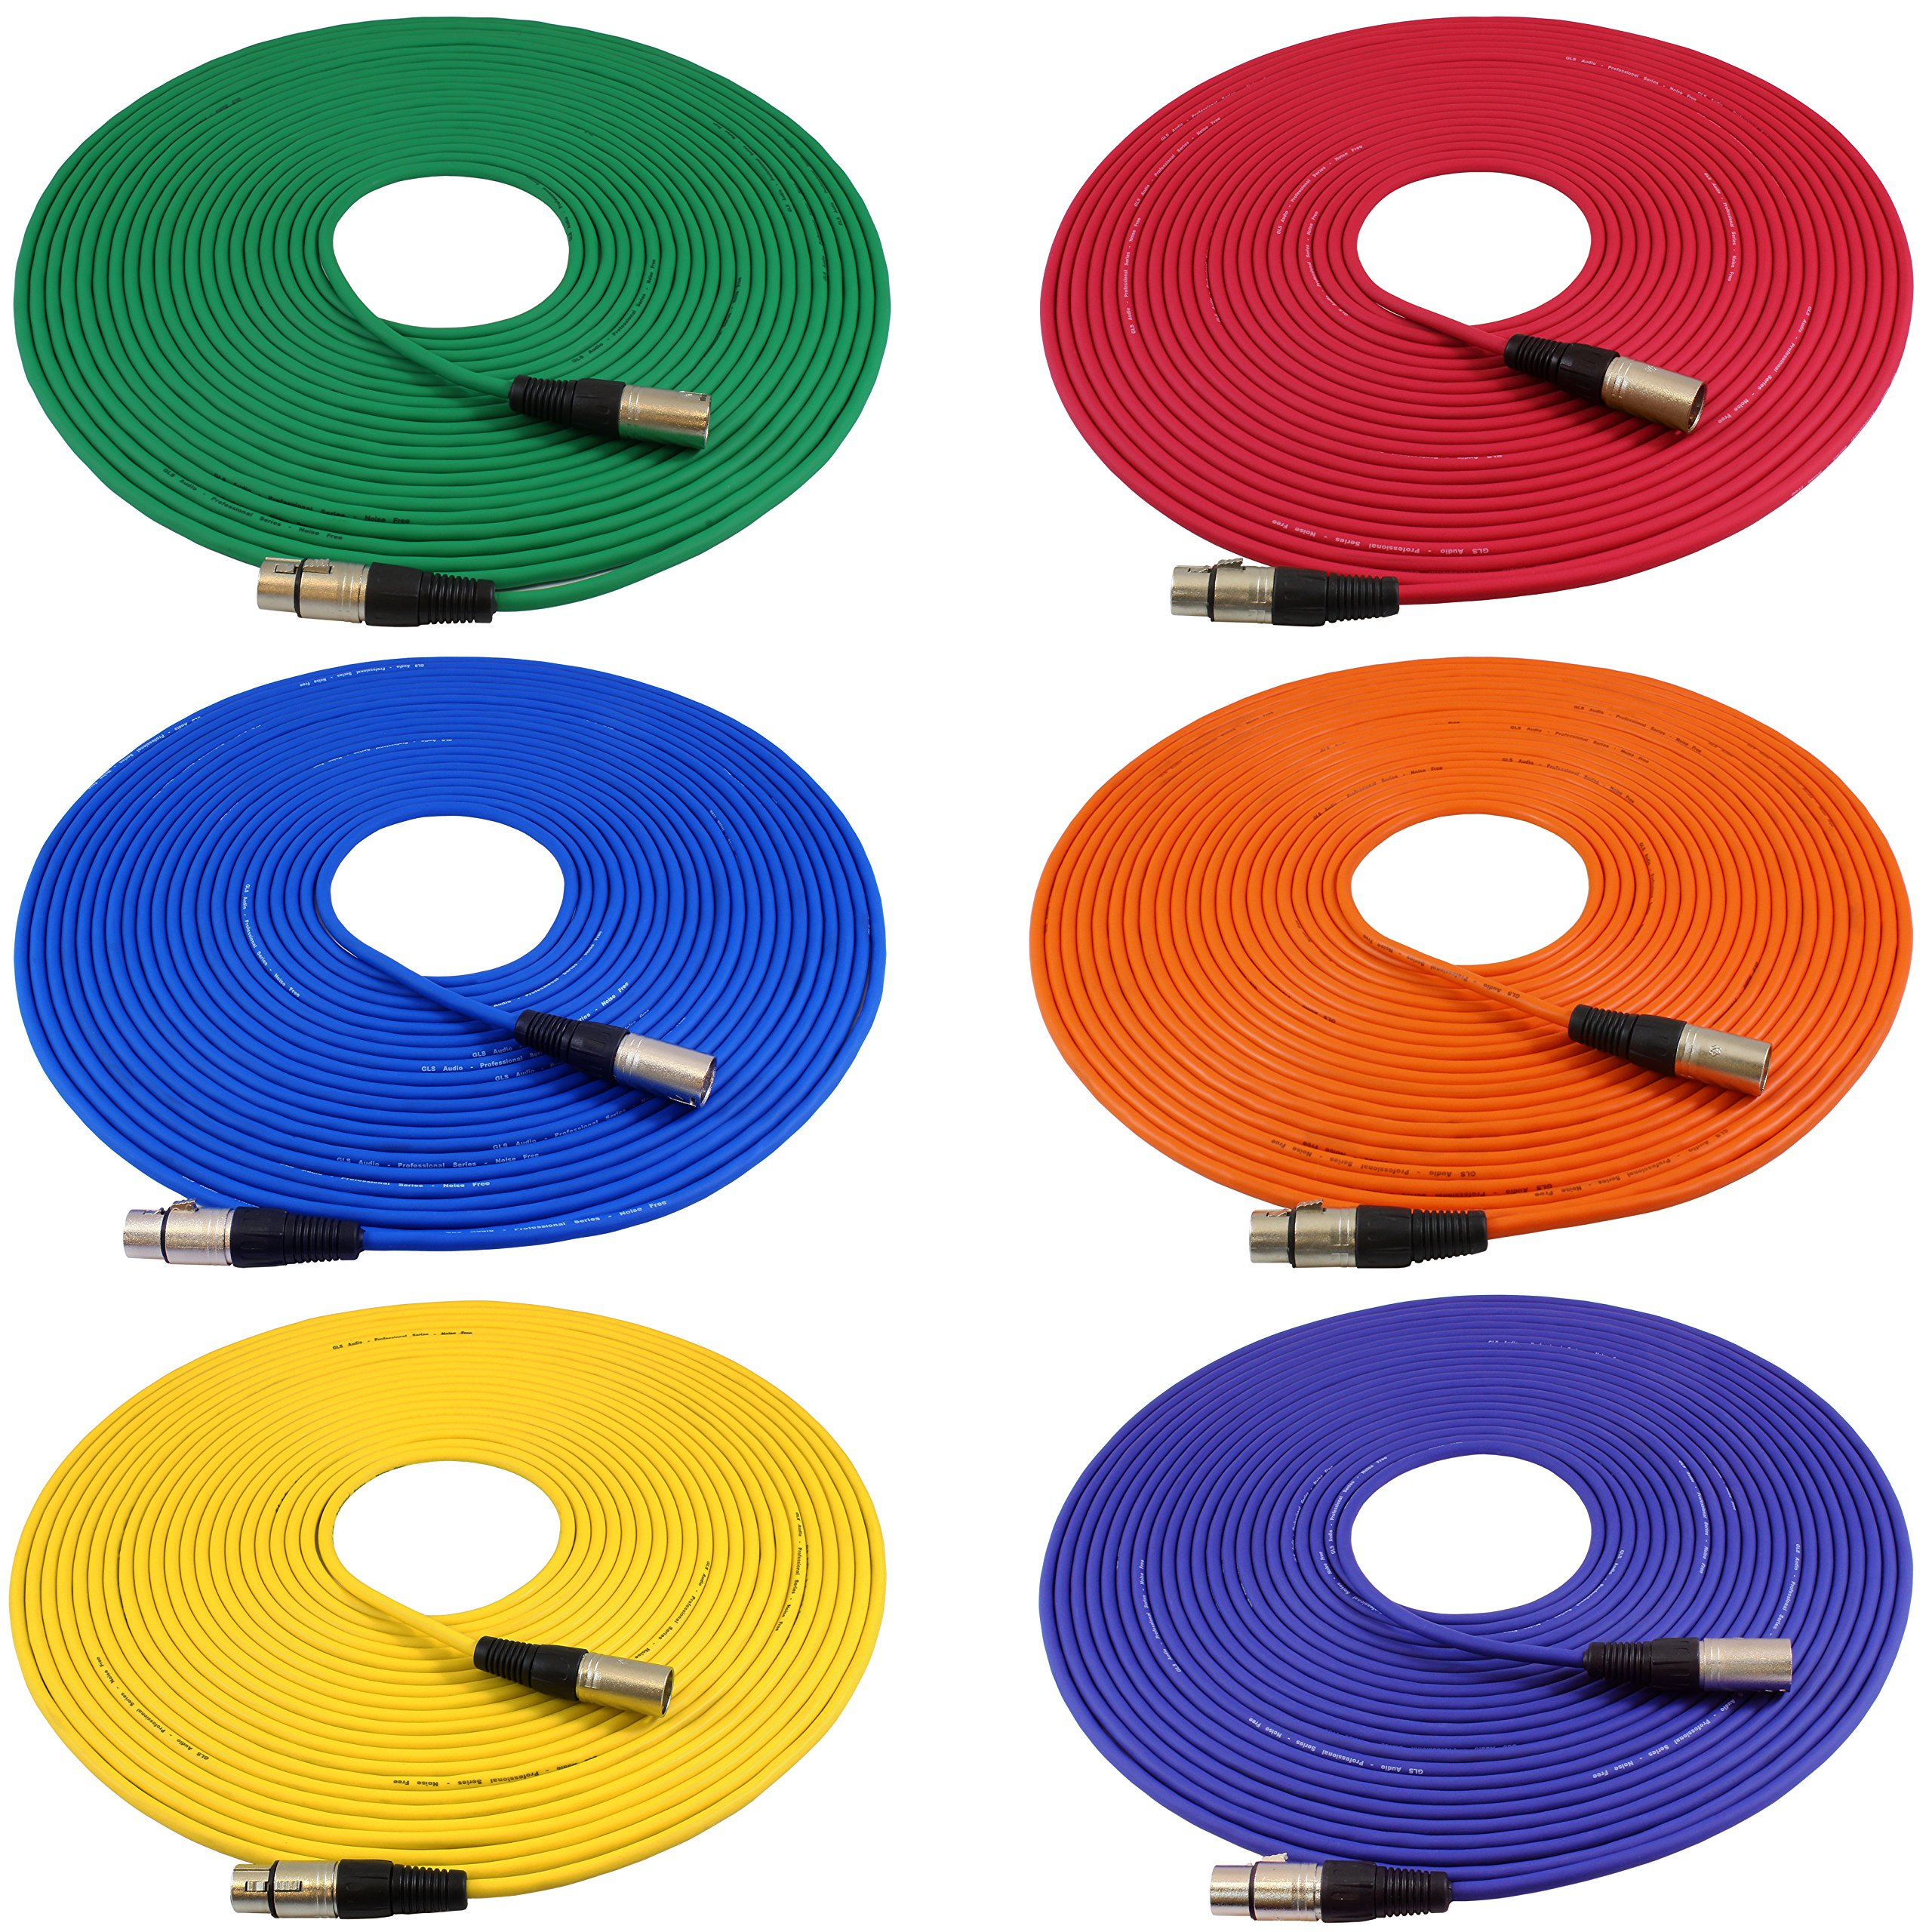 GLS Audio 50ft Mic Cable Cords - XLR Male to XLR Female Colored Cables - 50' Balanced Mike Cord - 6 PACK by GLS Audio